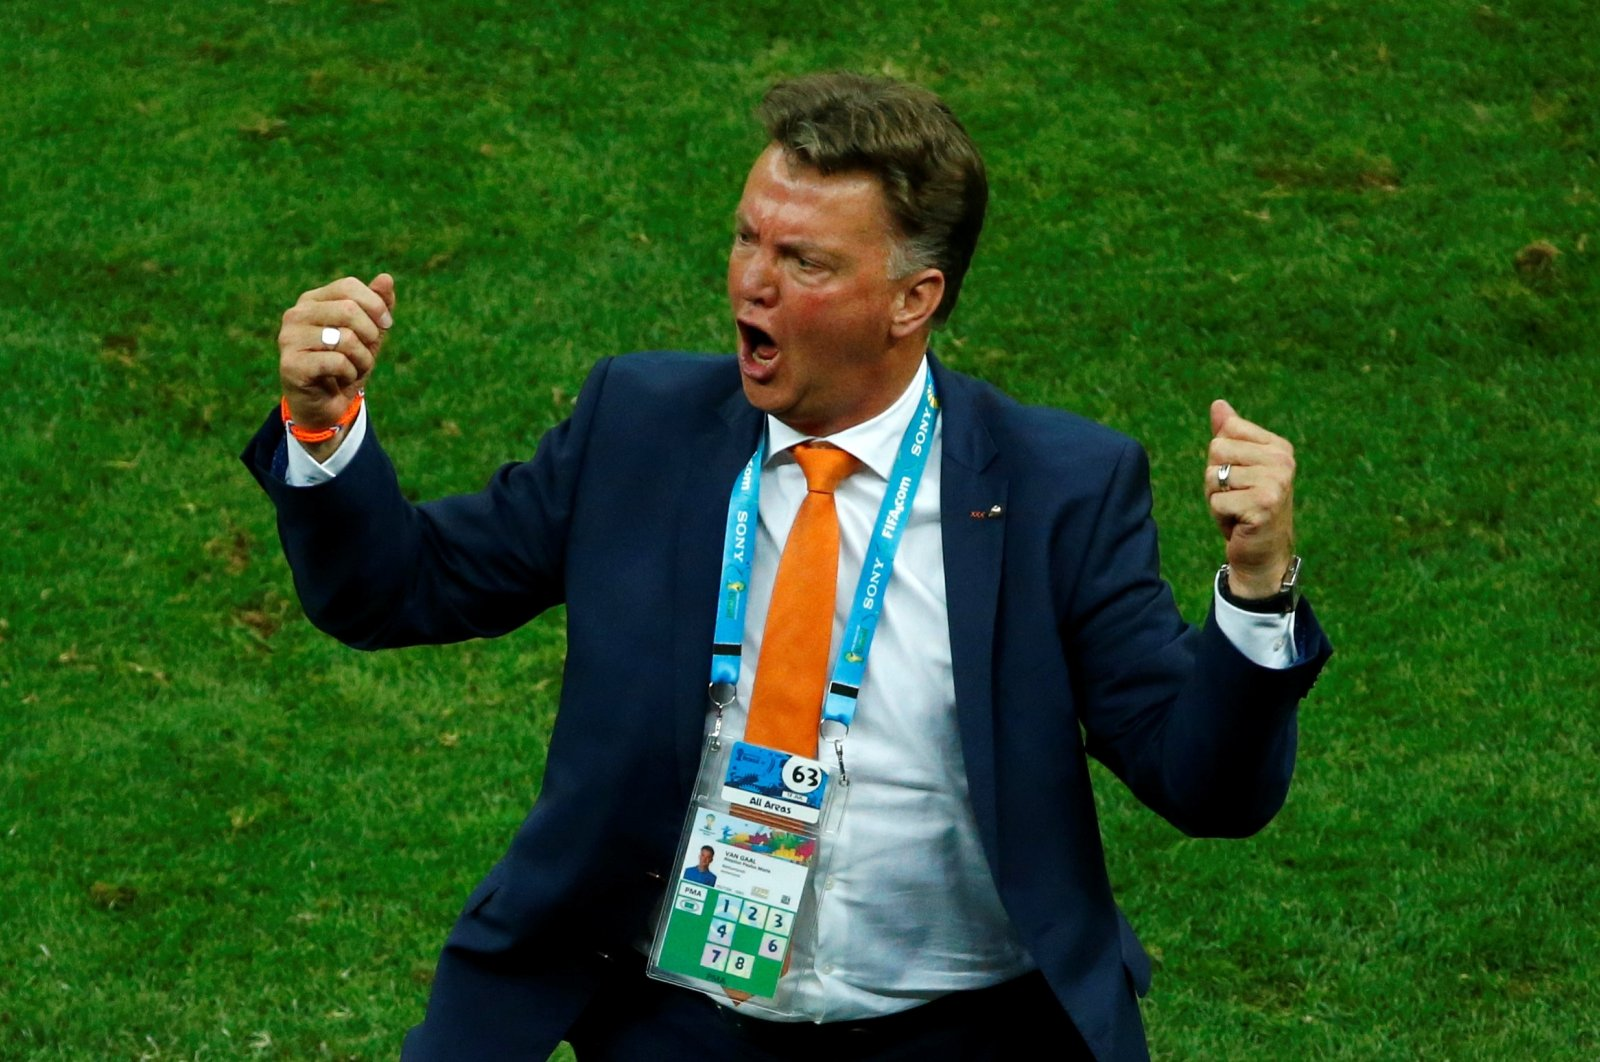 Netherlands coach Louis van Gaal reacts on the sidelines during the 2014 World Cup third-place playoff against Brazil at the Brasilia national stadium, Brasilia, Brazil, July 12, 2014. (Reuters Photo)